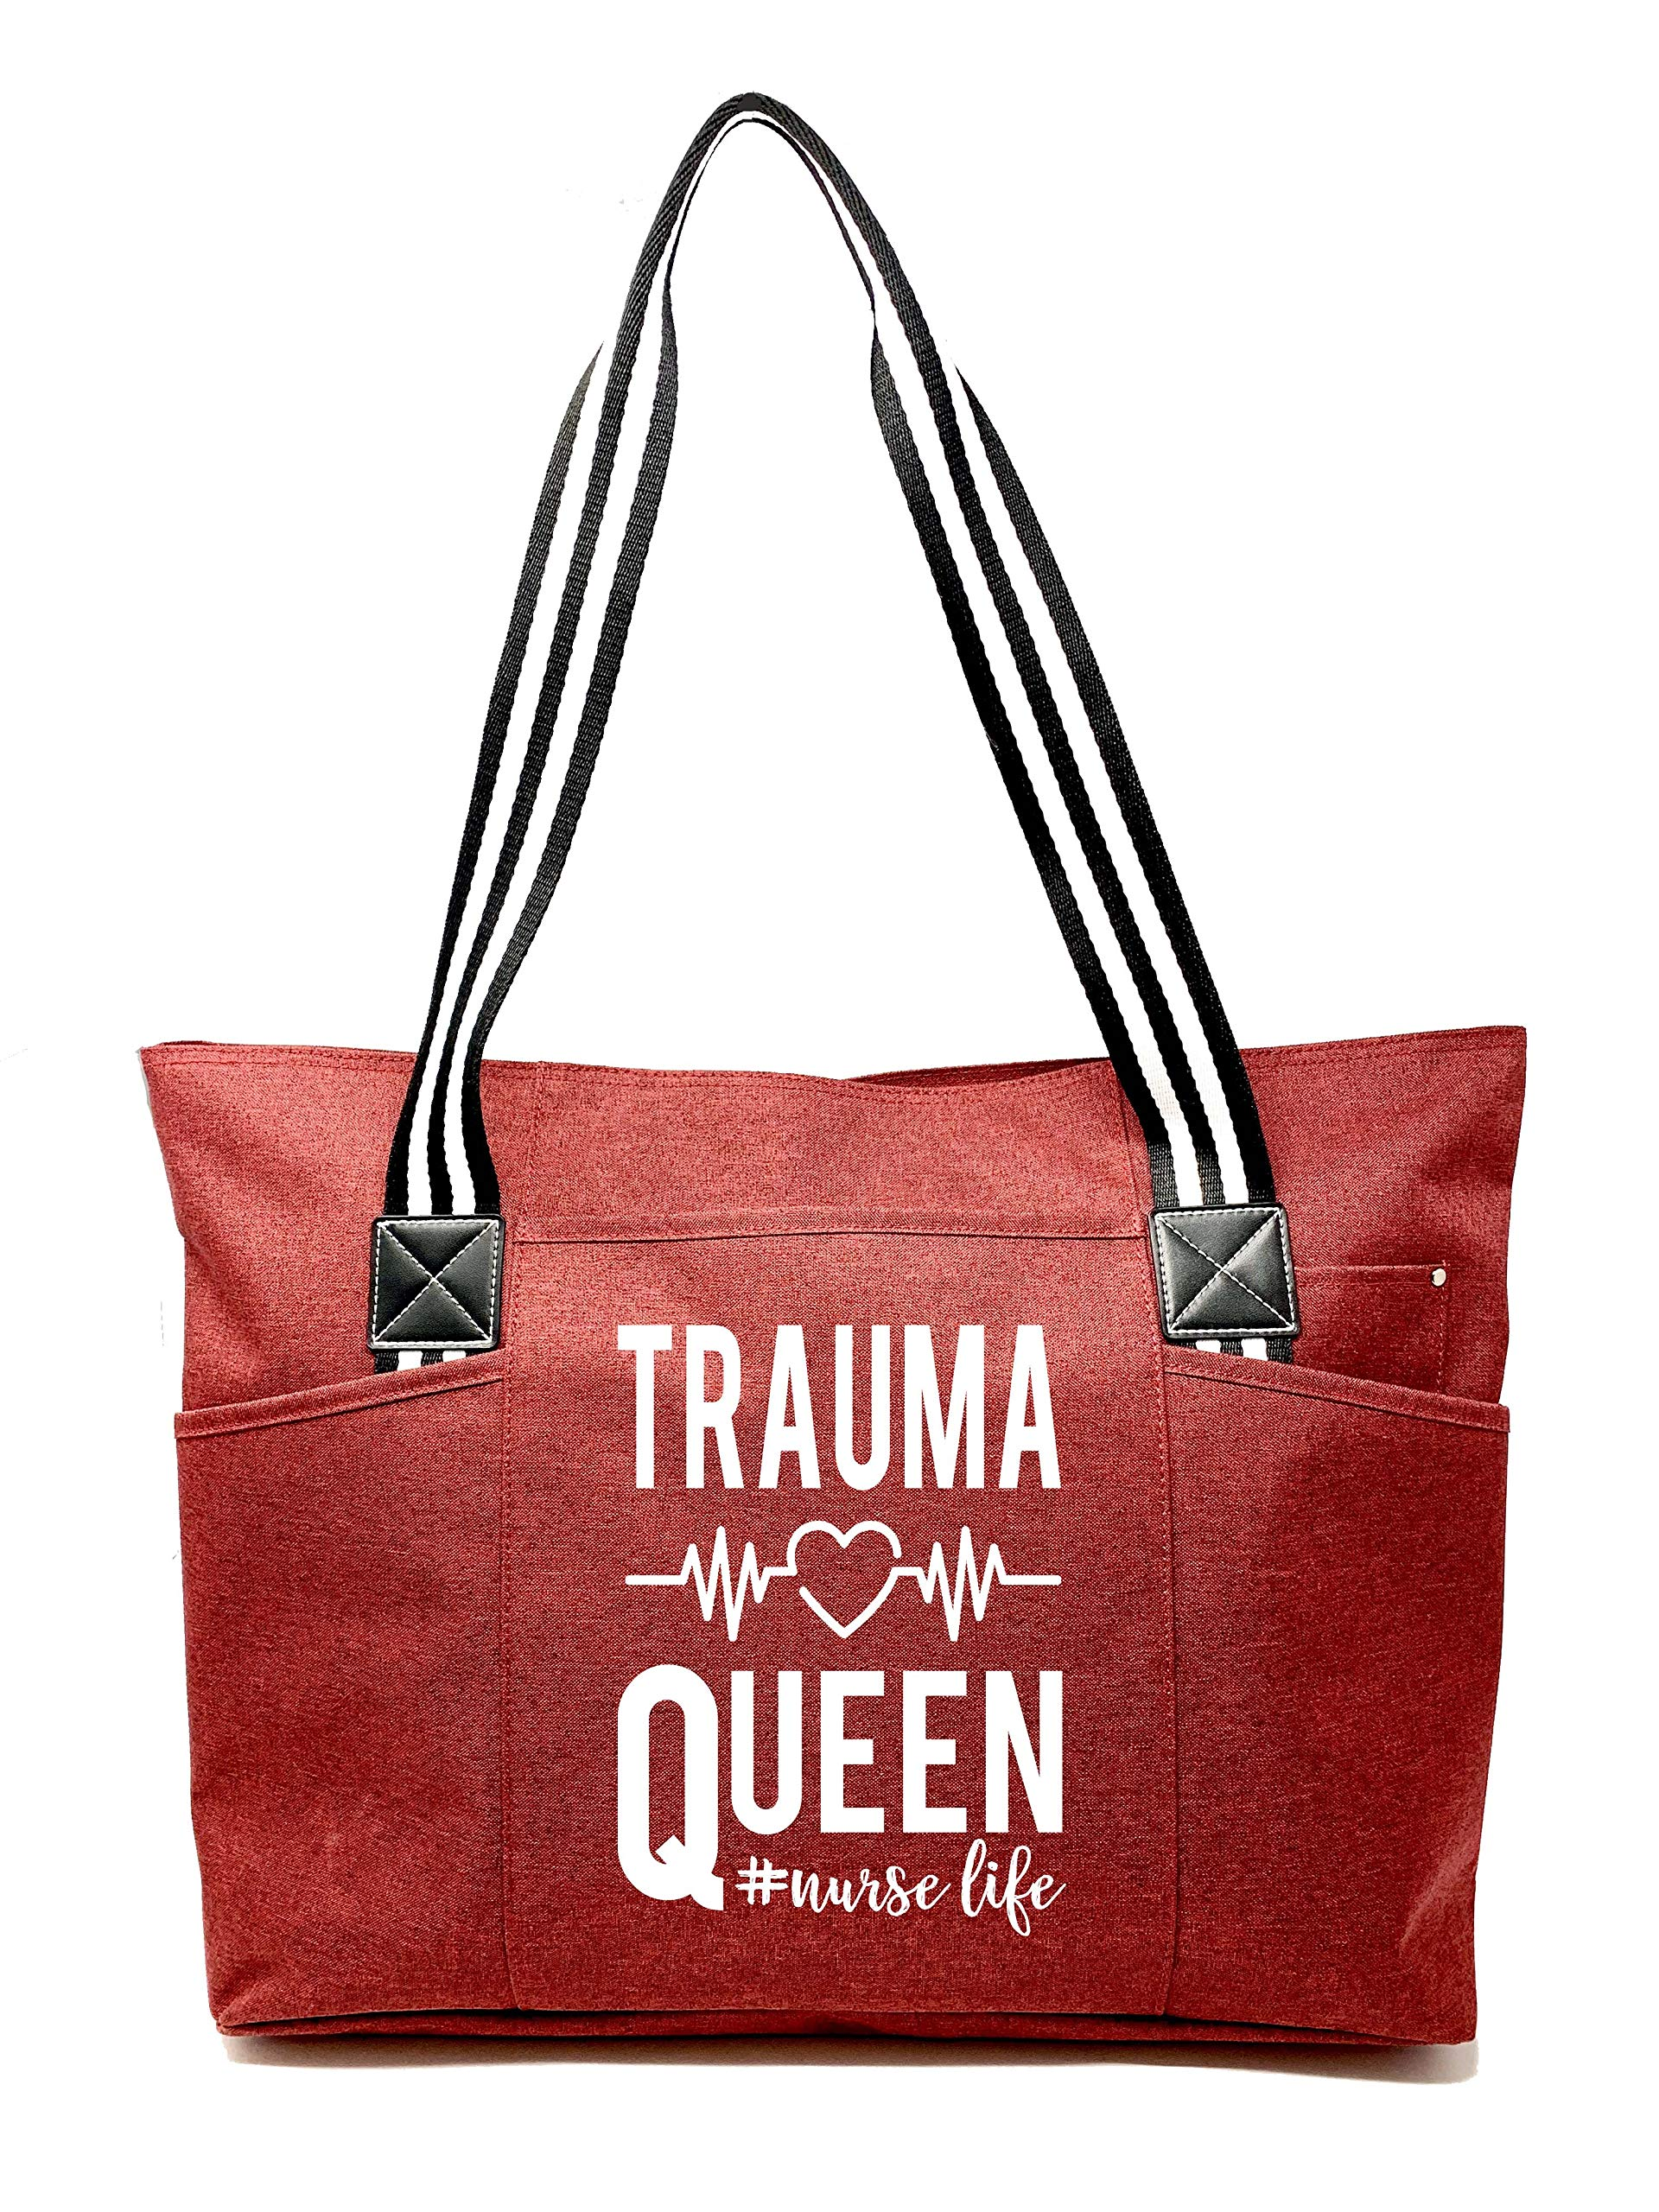 "Large Nursing""Premium"" Zippered Tote Bags with Pockets and Inside Lining for Nurses - Trauma Queen Red - Perfect for Work, Gifts for CNA, RN, Nursing Students - wiihuu"